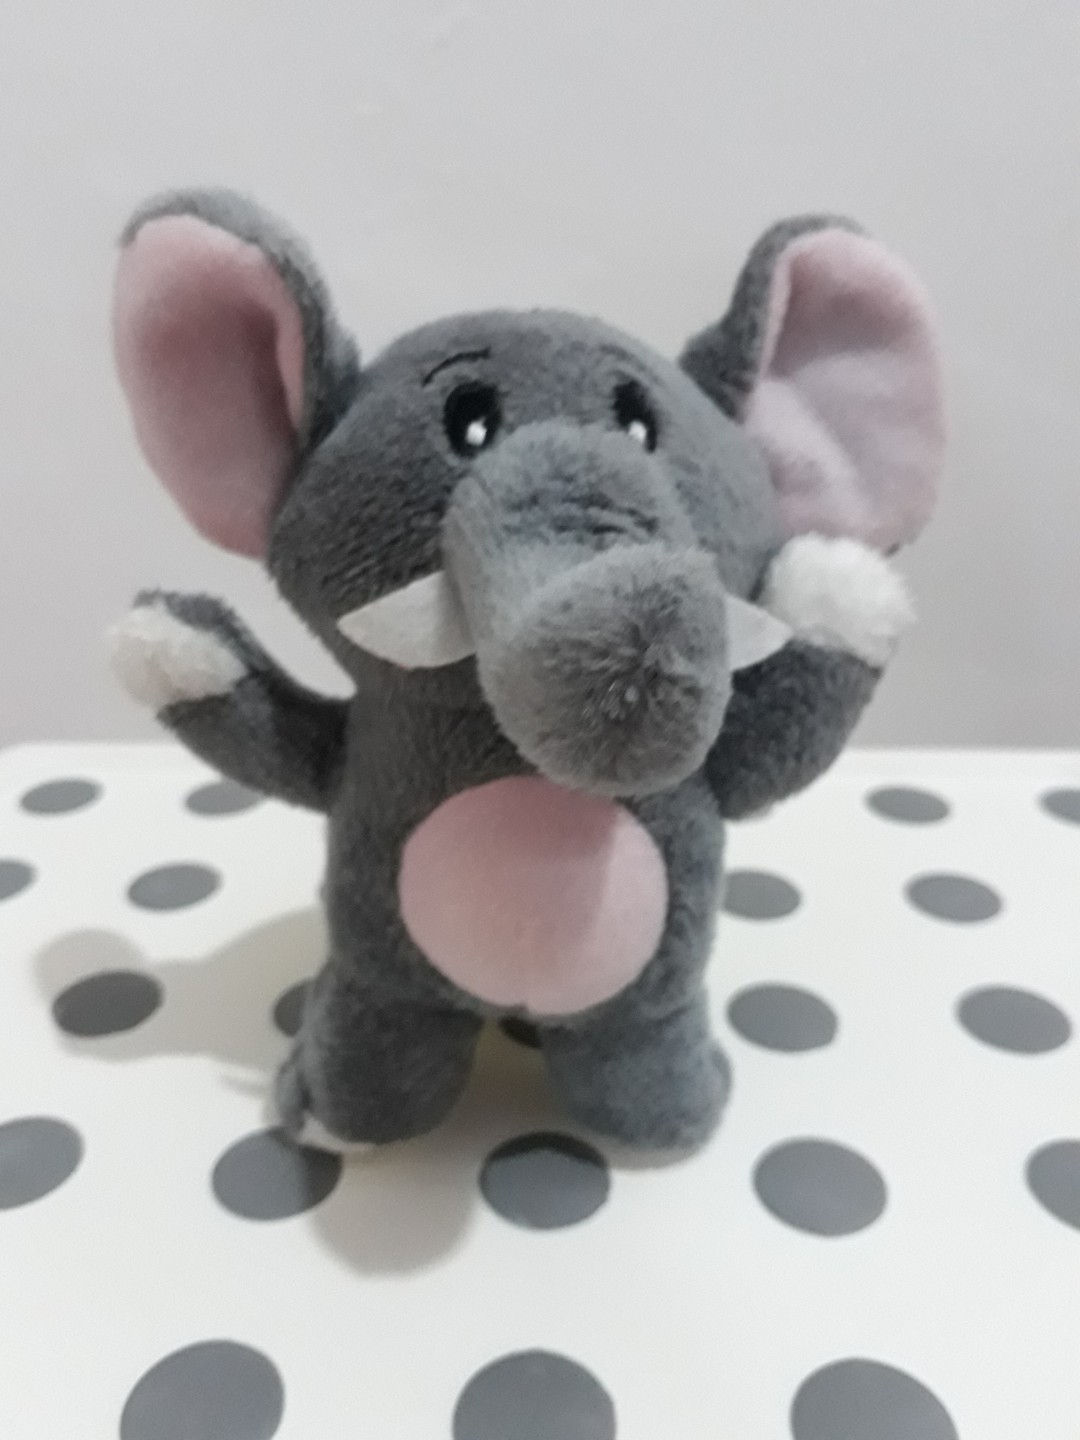 Boneka Gajah Kecil Babies Kids Others On Carousell Besar